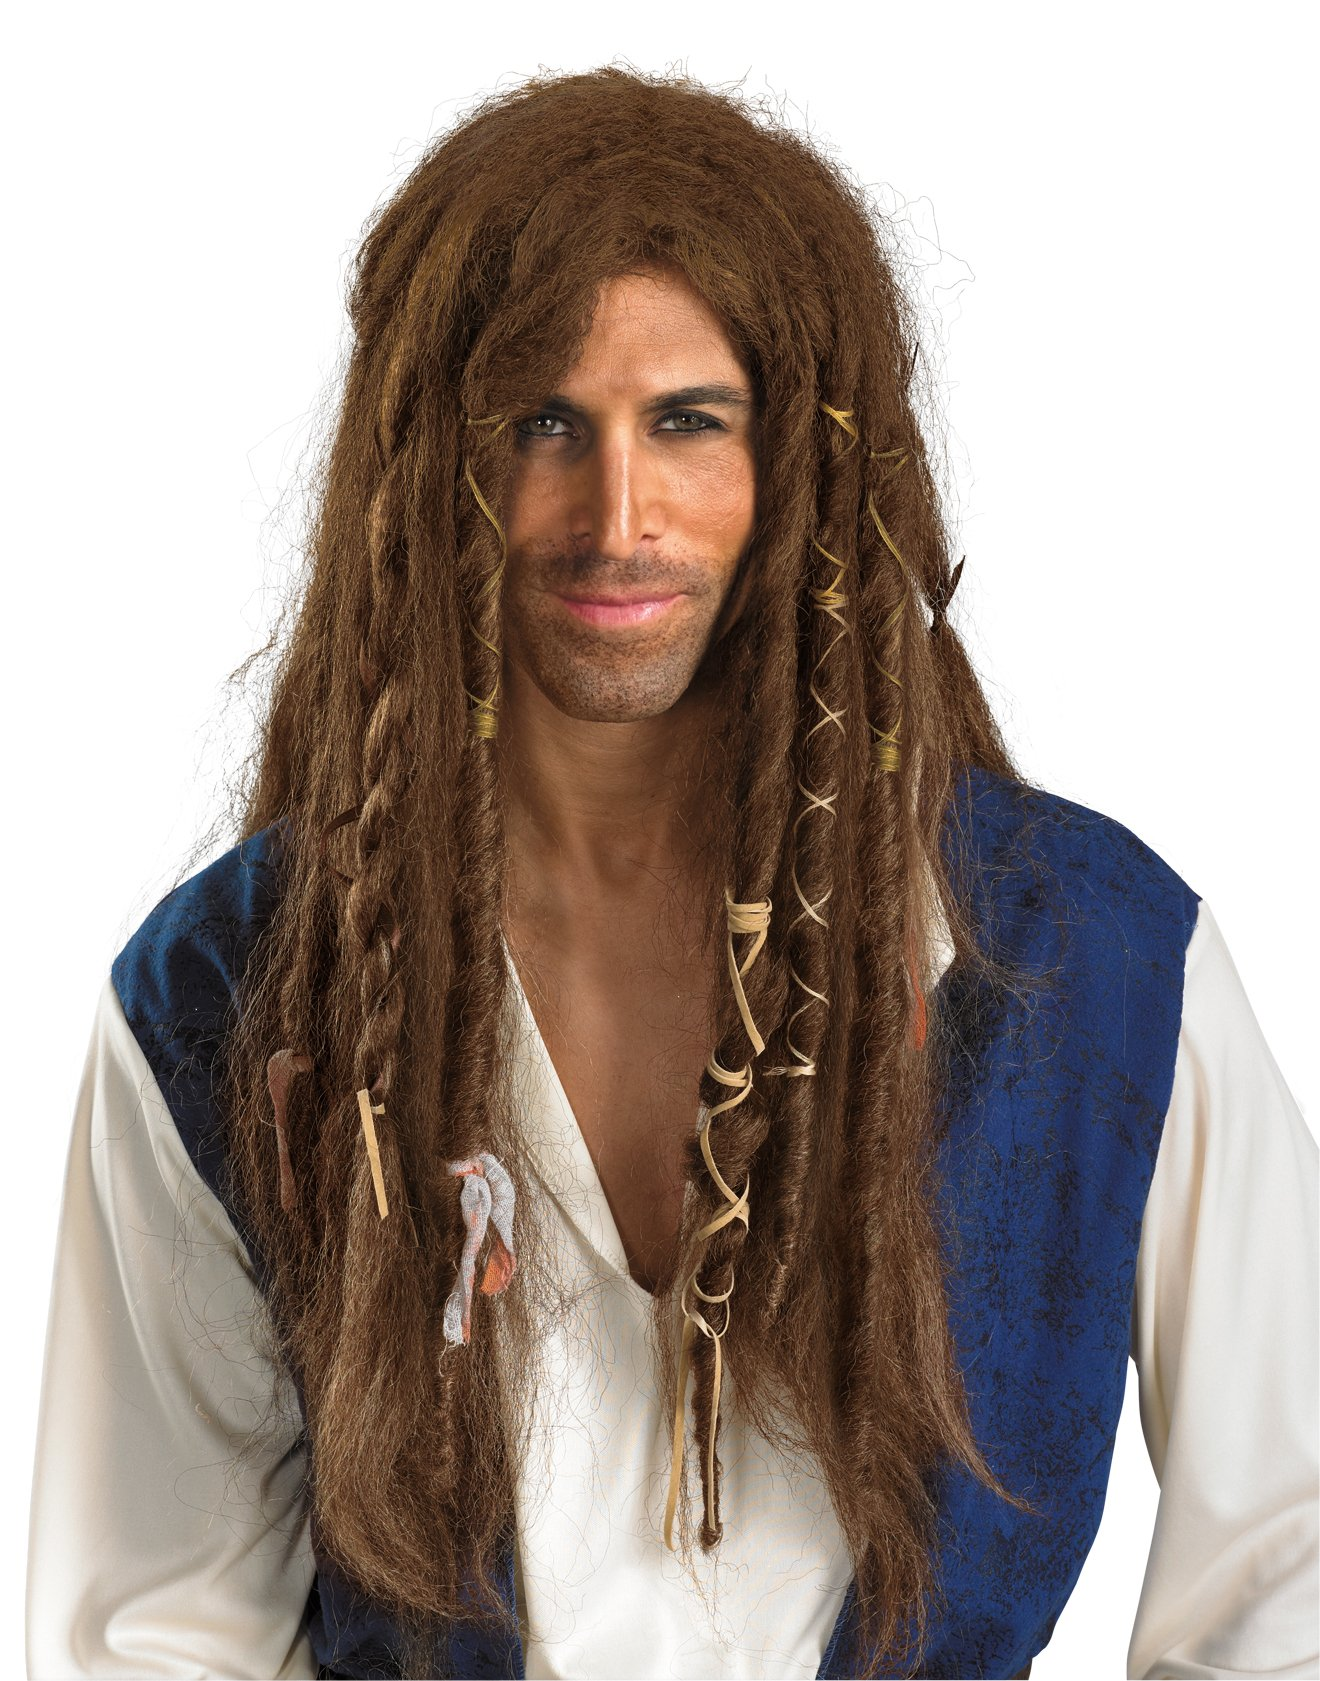 Pirates Of The Caribbean - Jack Sparrow Deluxe Wig (Adult)